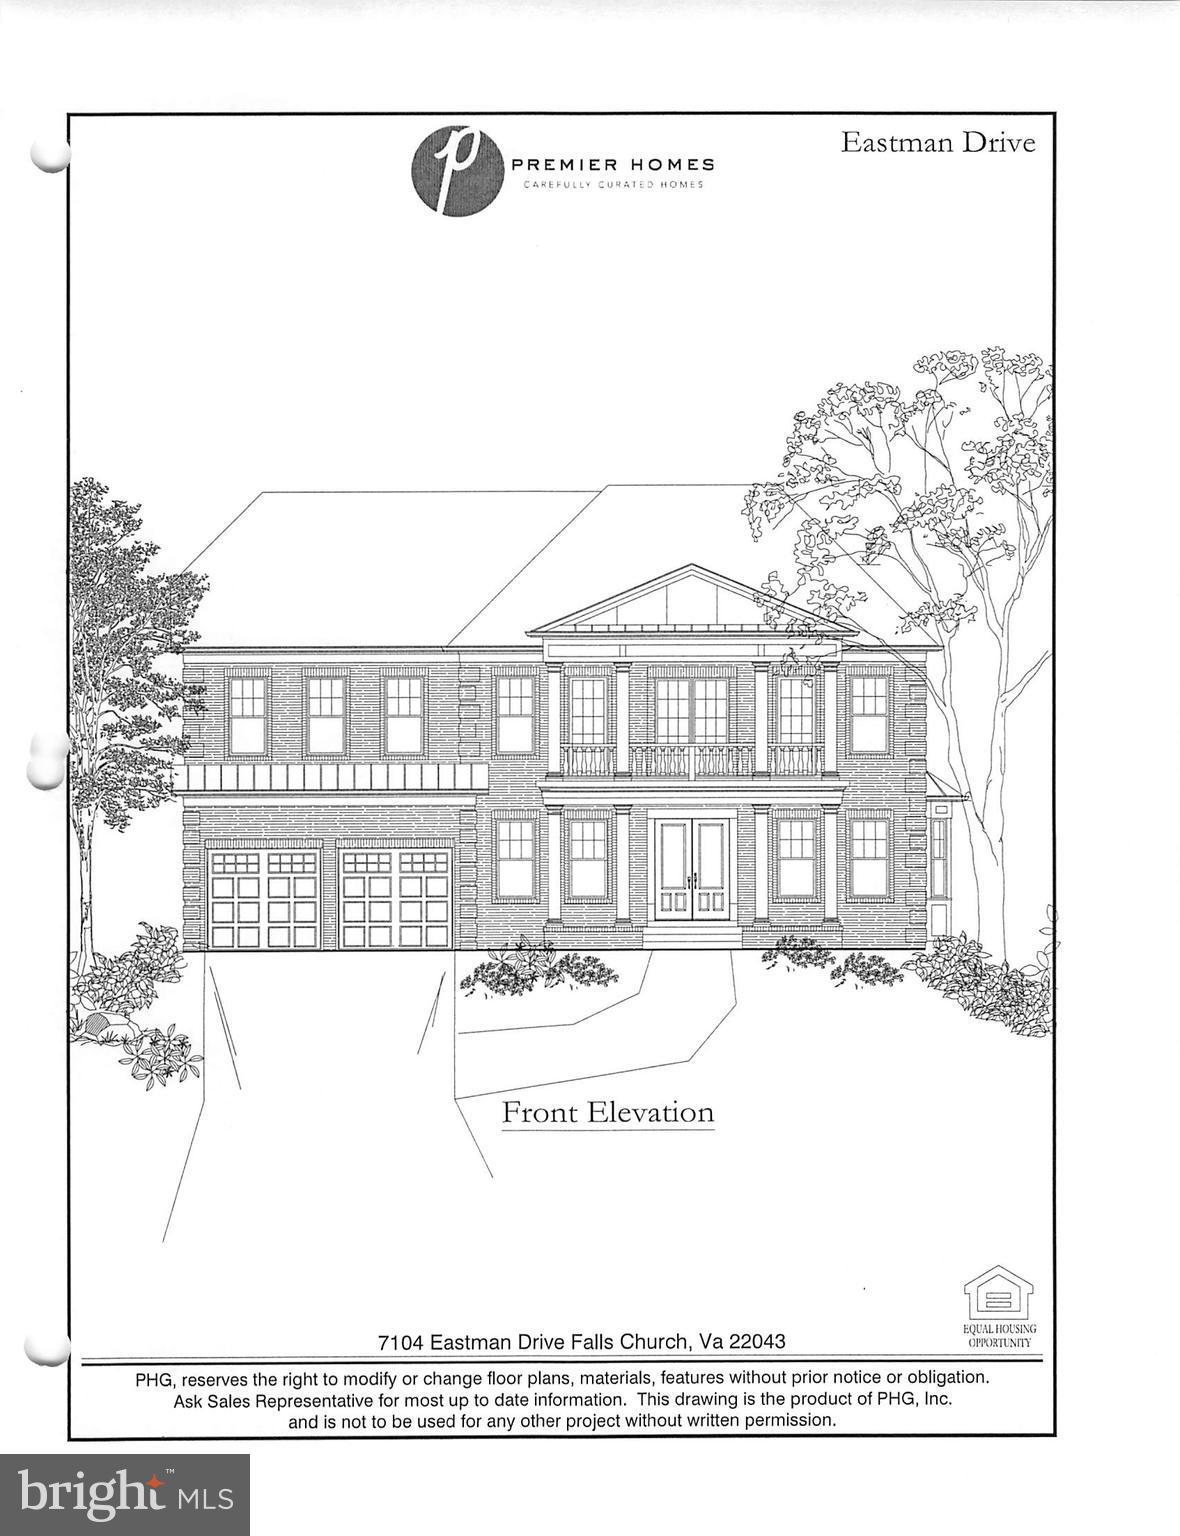 Premier Homes presents the Piedmont.  Elgnt opn, 8400+ sqft liv, ELEVATOR, Chef kitch w/lrg isl. Top of line cabinet&Hrdwr. lrg FR shares 2side fpl w/scrned porch,lib/BD,Deck. Hrdwd on ML,UL hall & MBD. MBD w/sitting room w/fpl & scrned porch. Lux Frnch style glss encl MBA. cedar cl. LL feat/RR w/fpl, Bar, 2BD, BA,Spa,Exercise Rm,Safe Rm. Extensive Moldings, UNPARALLELED QUALITY.OVER $150k SPENT ON OUTDOOR LIVING SPACE! Deliv Winter'18/19